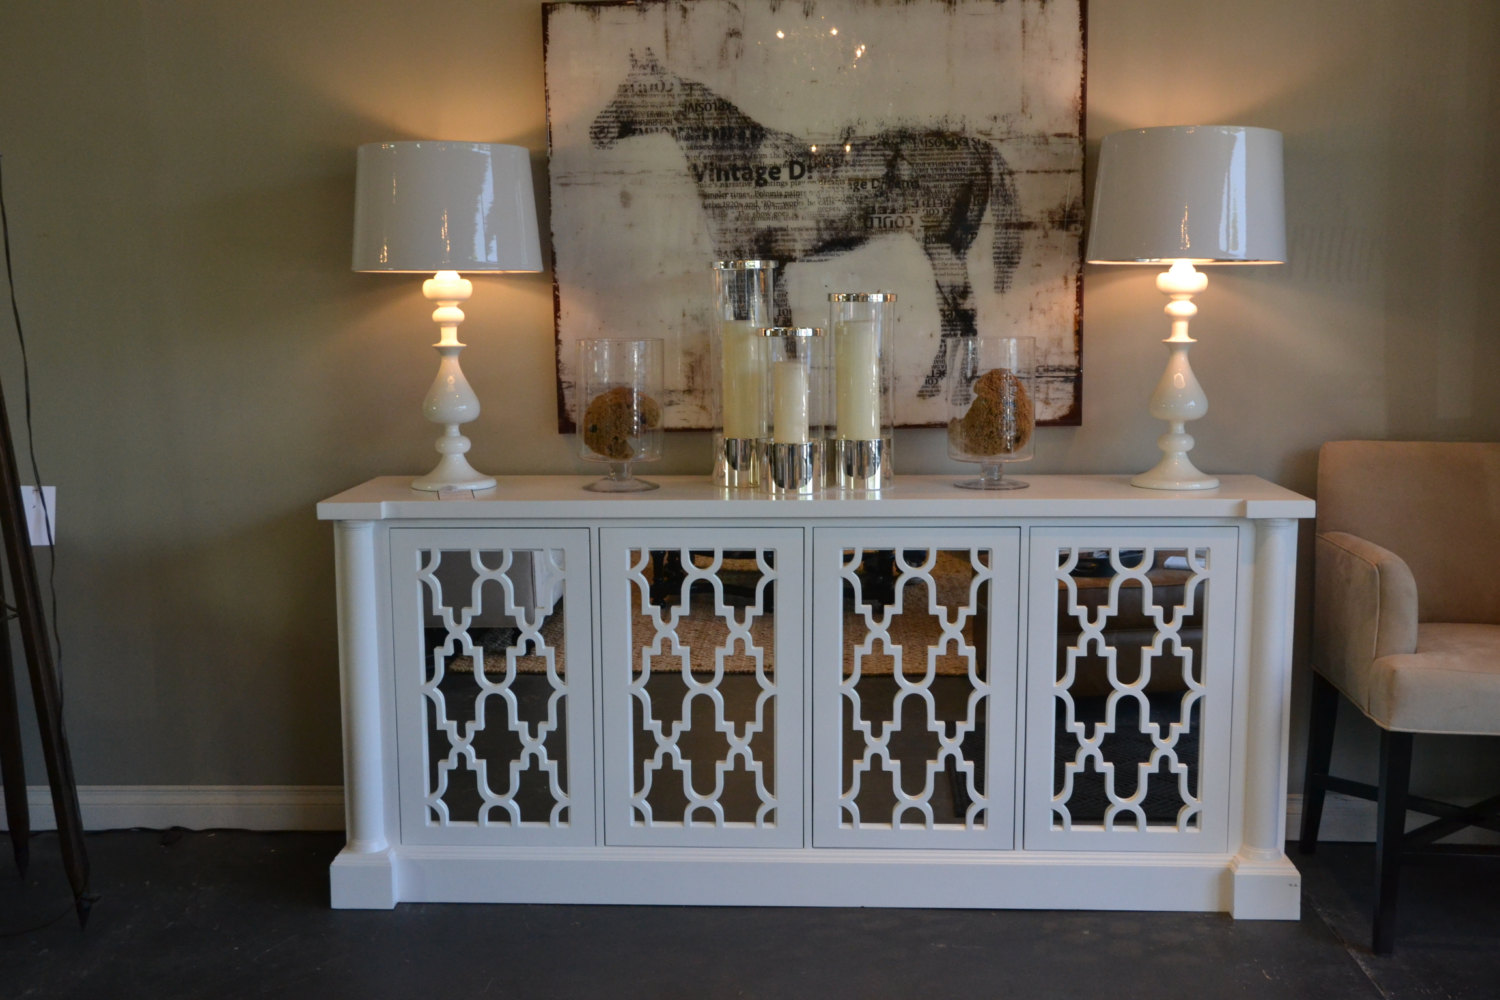 High Quality White Mirrored Media Console With Big Frame Candles And Double White Lamps